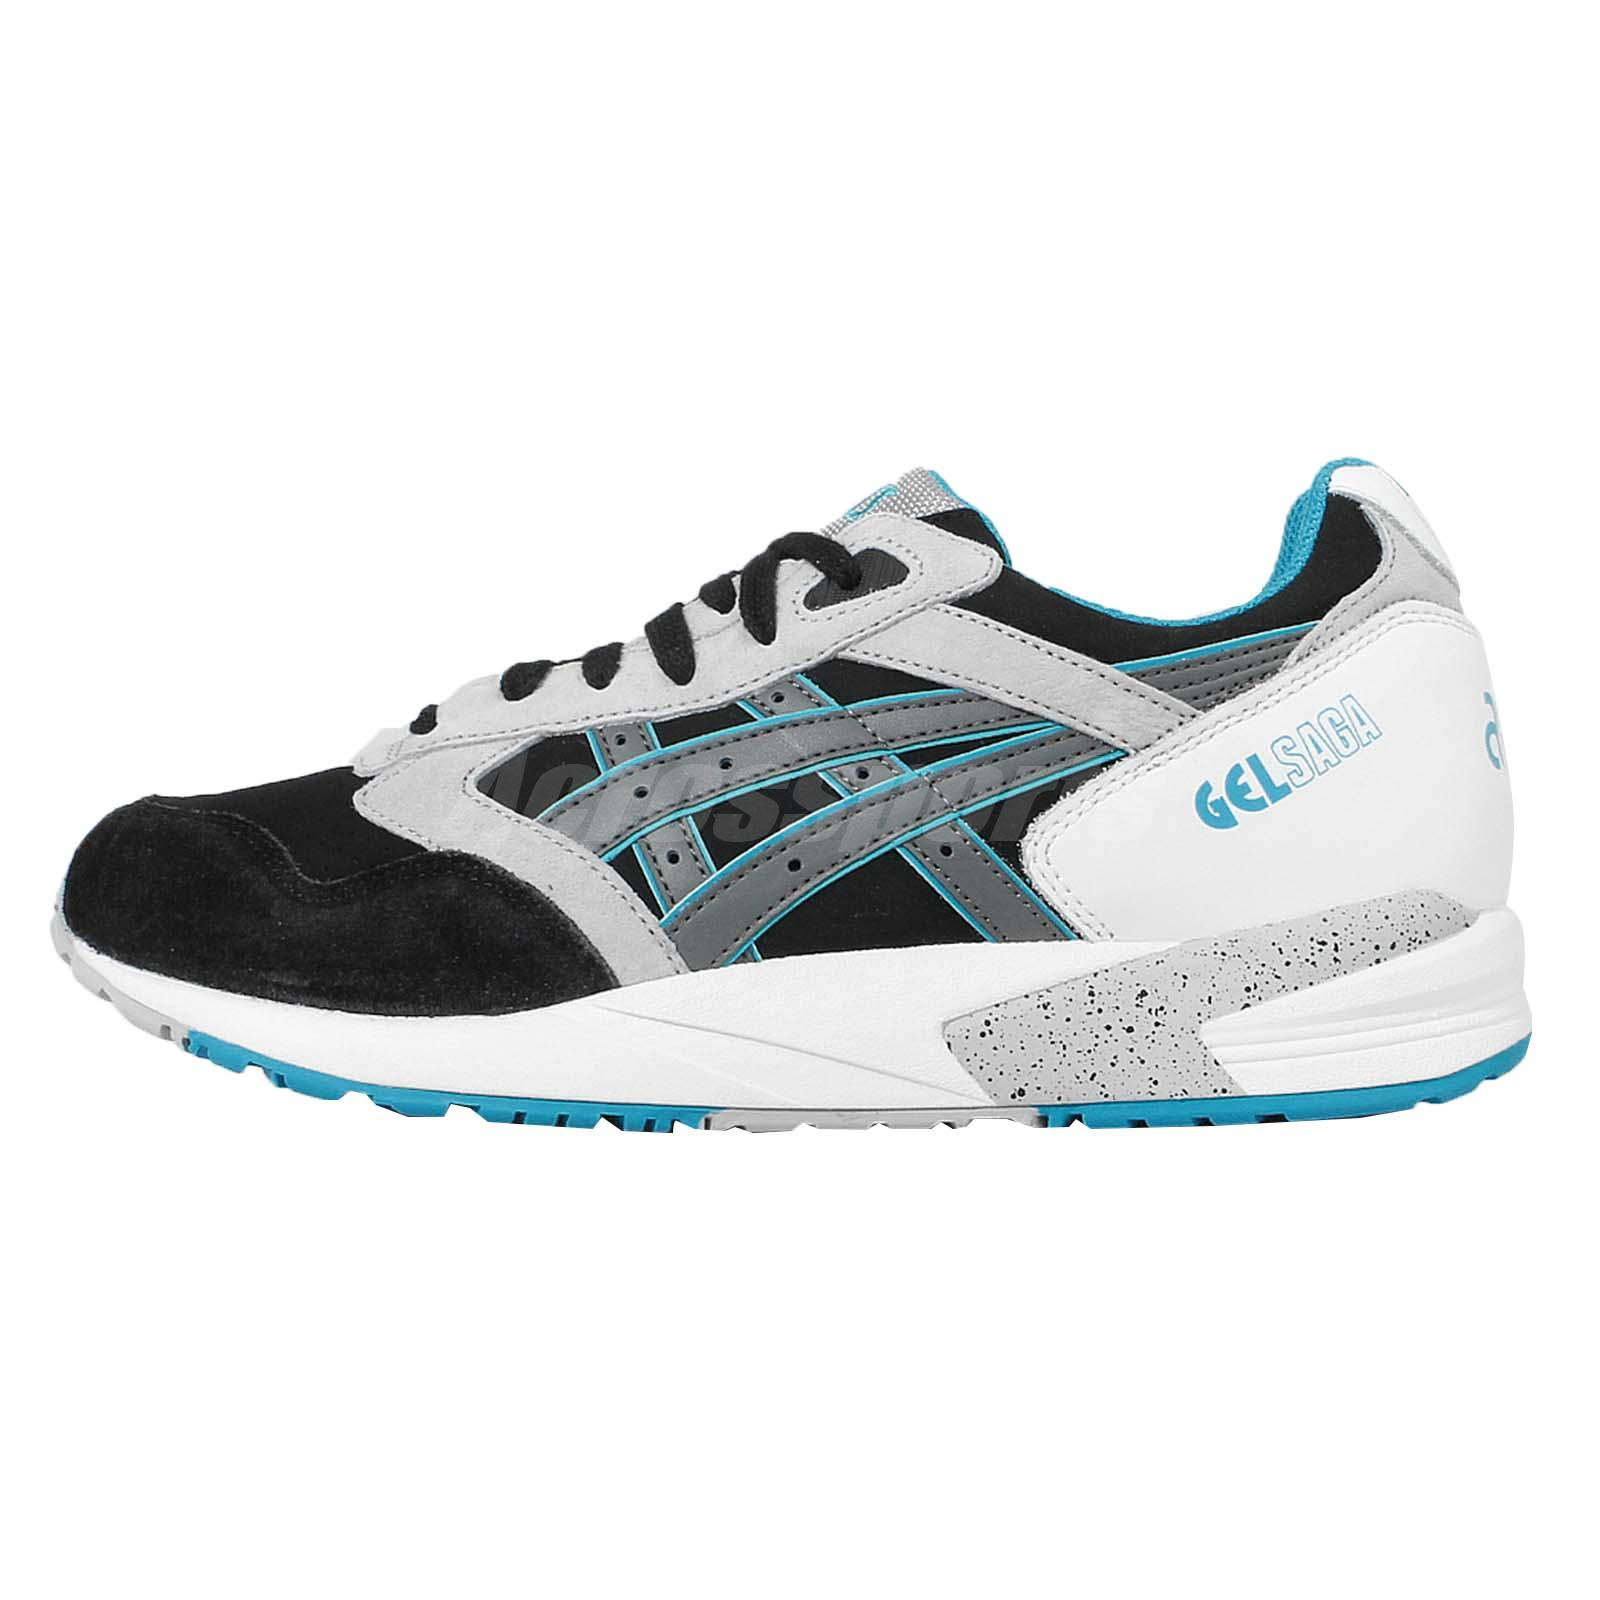 Asics Tiger Gel Saga Black Grey Blue Mens Running Shoes Trainers H648L 9011